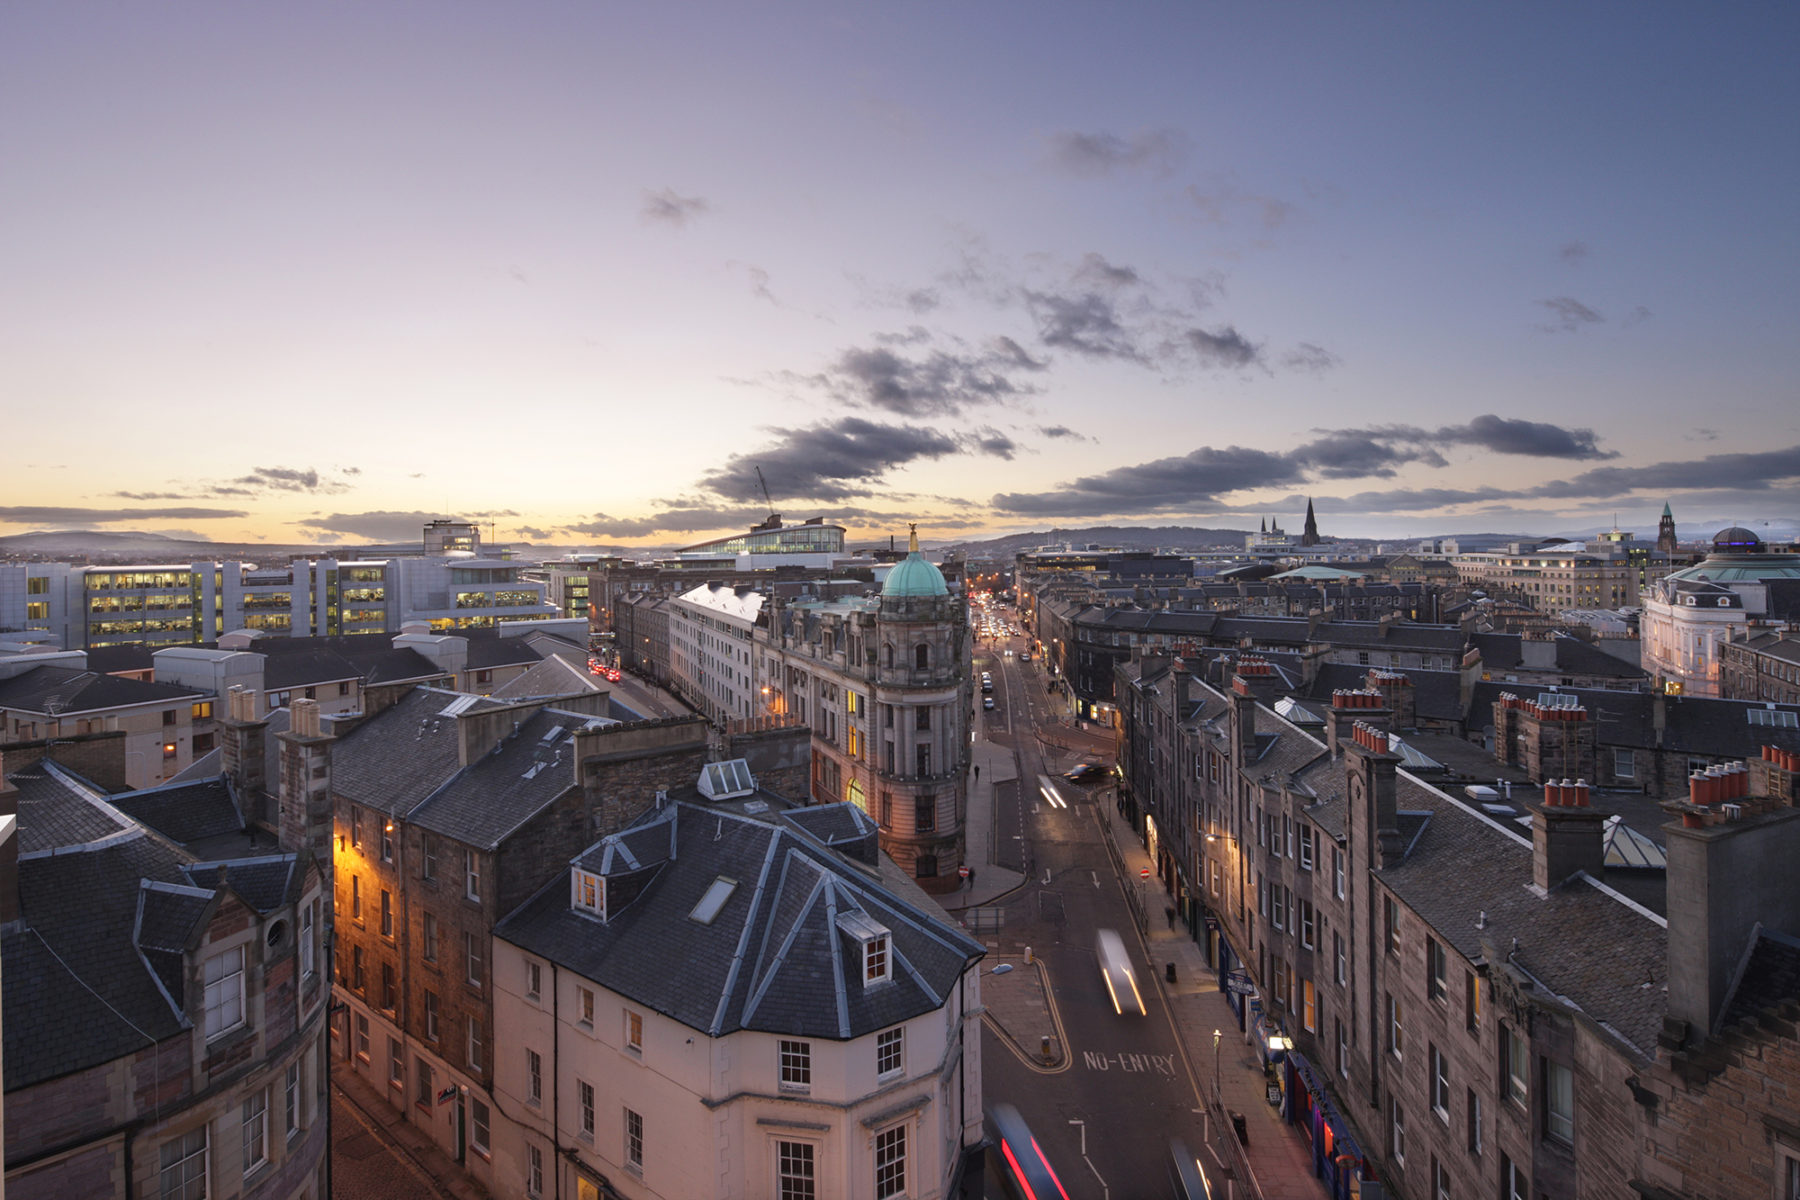 Edinburgh city scape, image by McAteer Photograph